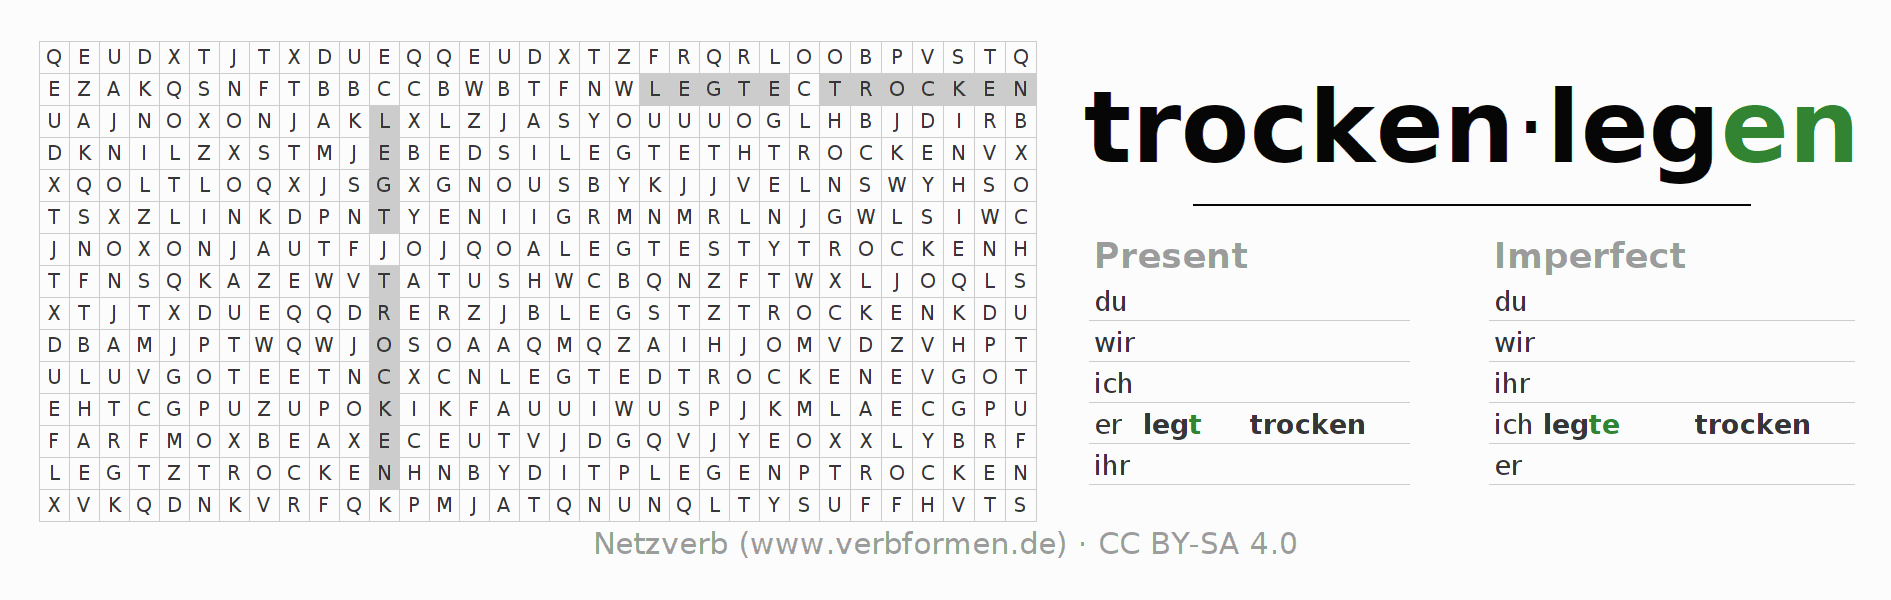 Word search puzzle for the conjugation of the verb trockenlegen